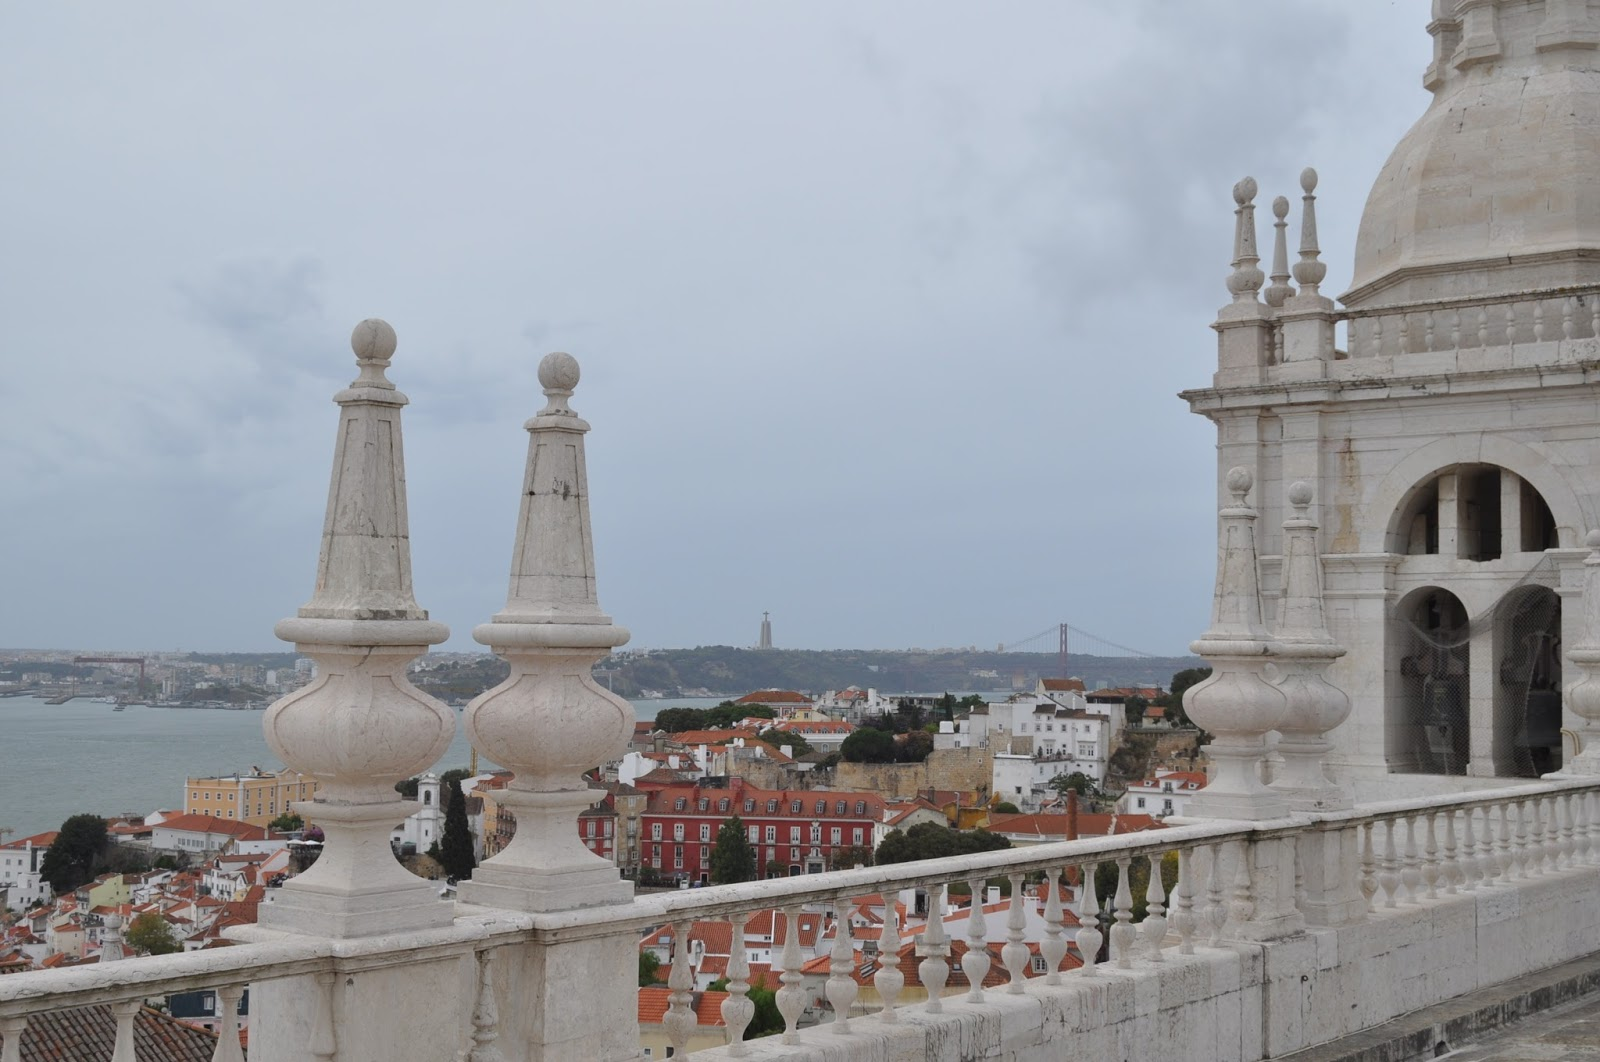 The roof of St Vincent outside the walls, 8 Great Discoveries in Lisbon, photo by Modern Bric a Brac